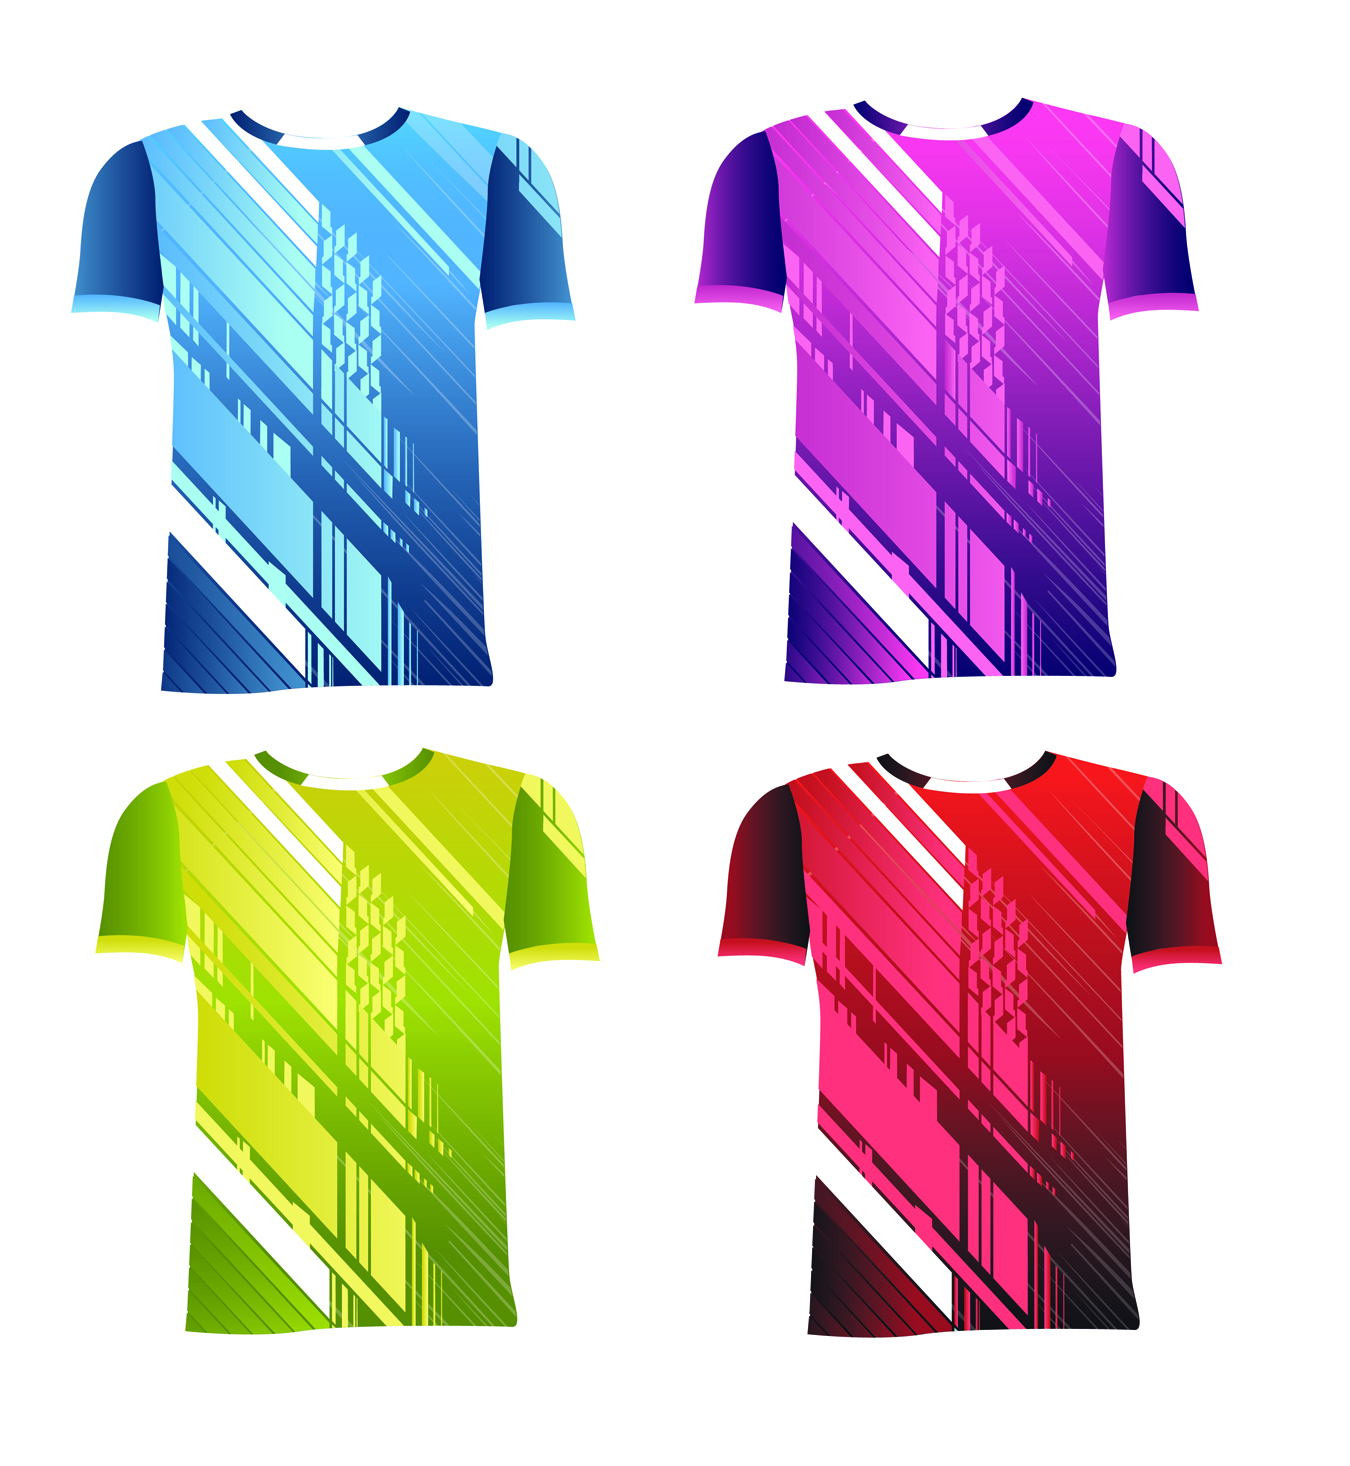 Colorful modern t shirt design for md textile sdn bhd by for Modern t shirt designs